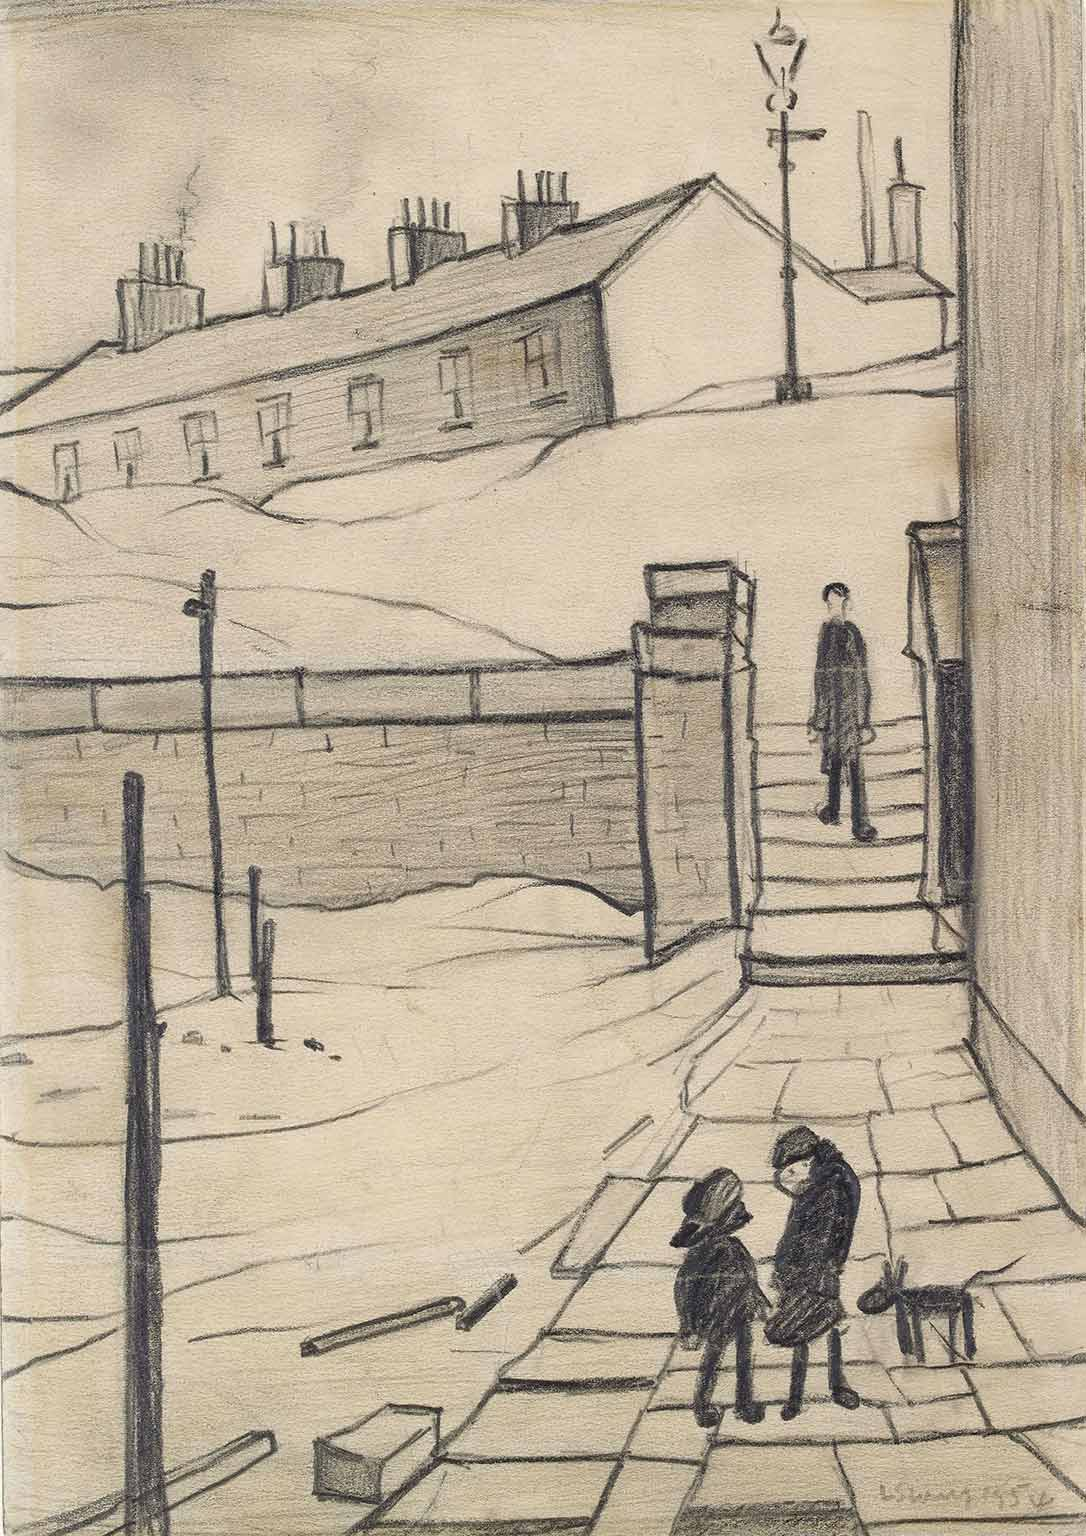 4. Great British Drawings, Ashmolean Museum, 50% off with National Art Pass - LS Lowry, Street in Ramsbottom, 1954. © The Estate of L.S. Lowry All rights reserved, DACS 2014